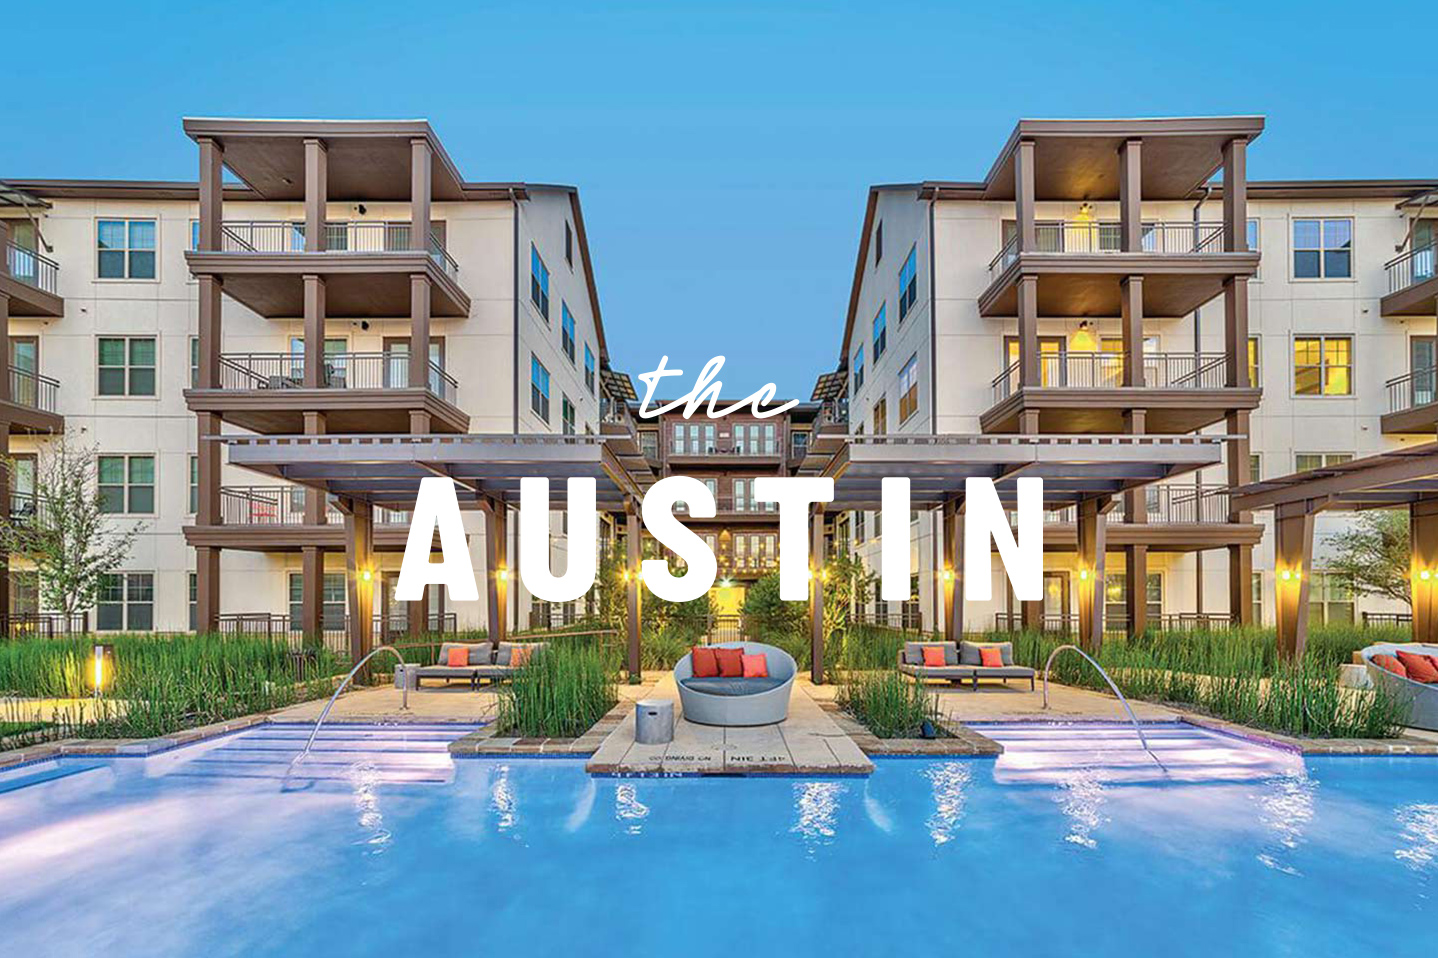 The Austin Trinity Groves Dallas Apartment StreetLights Residentail